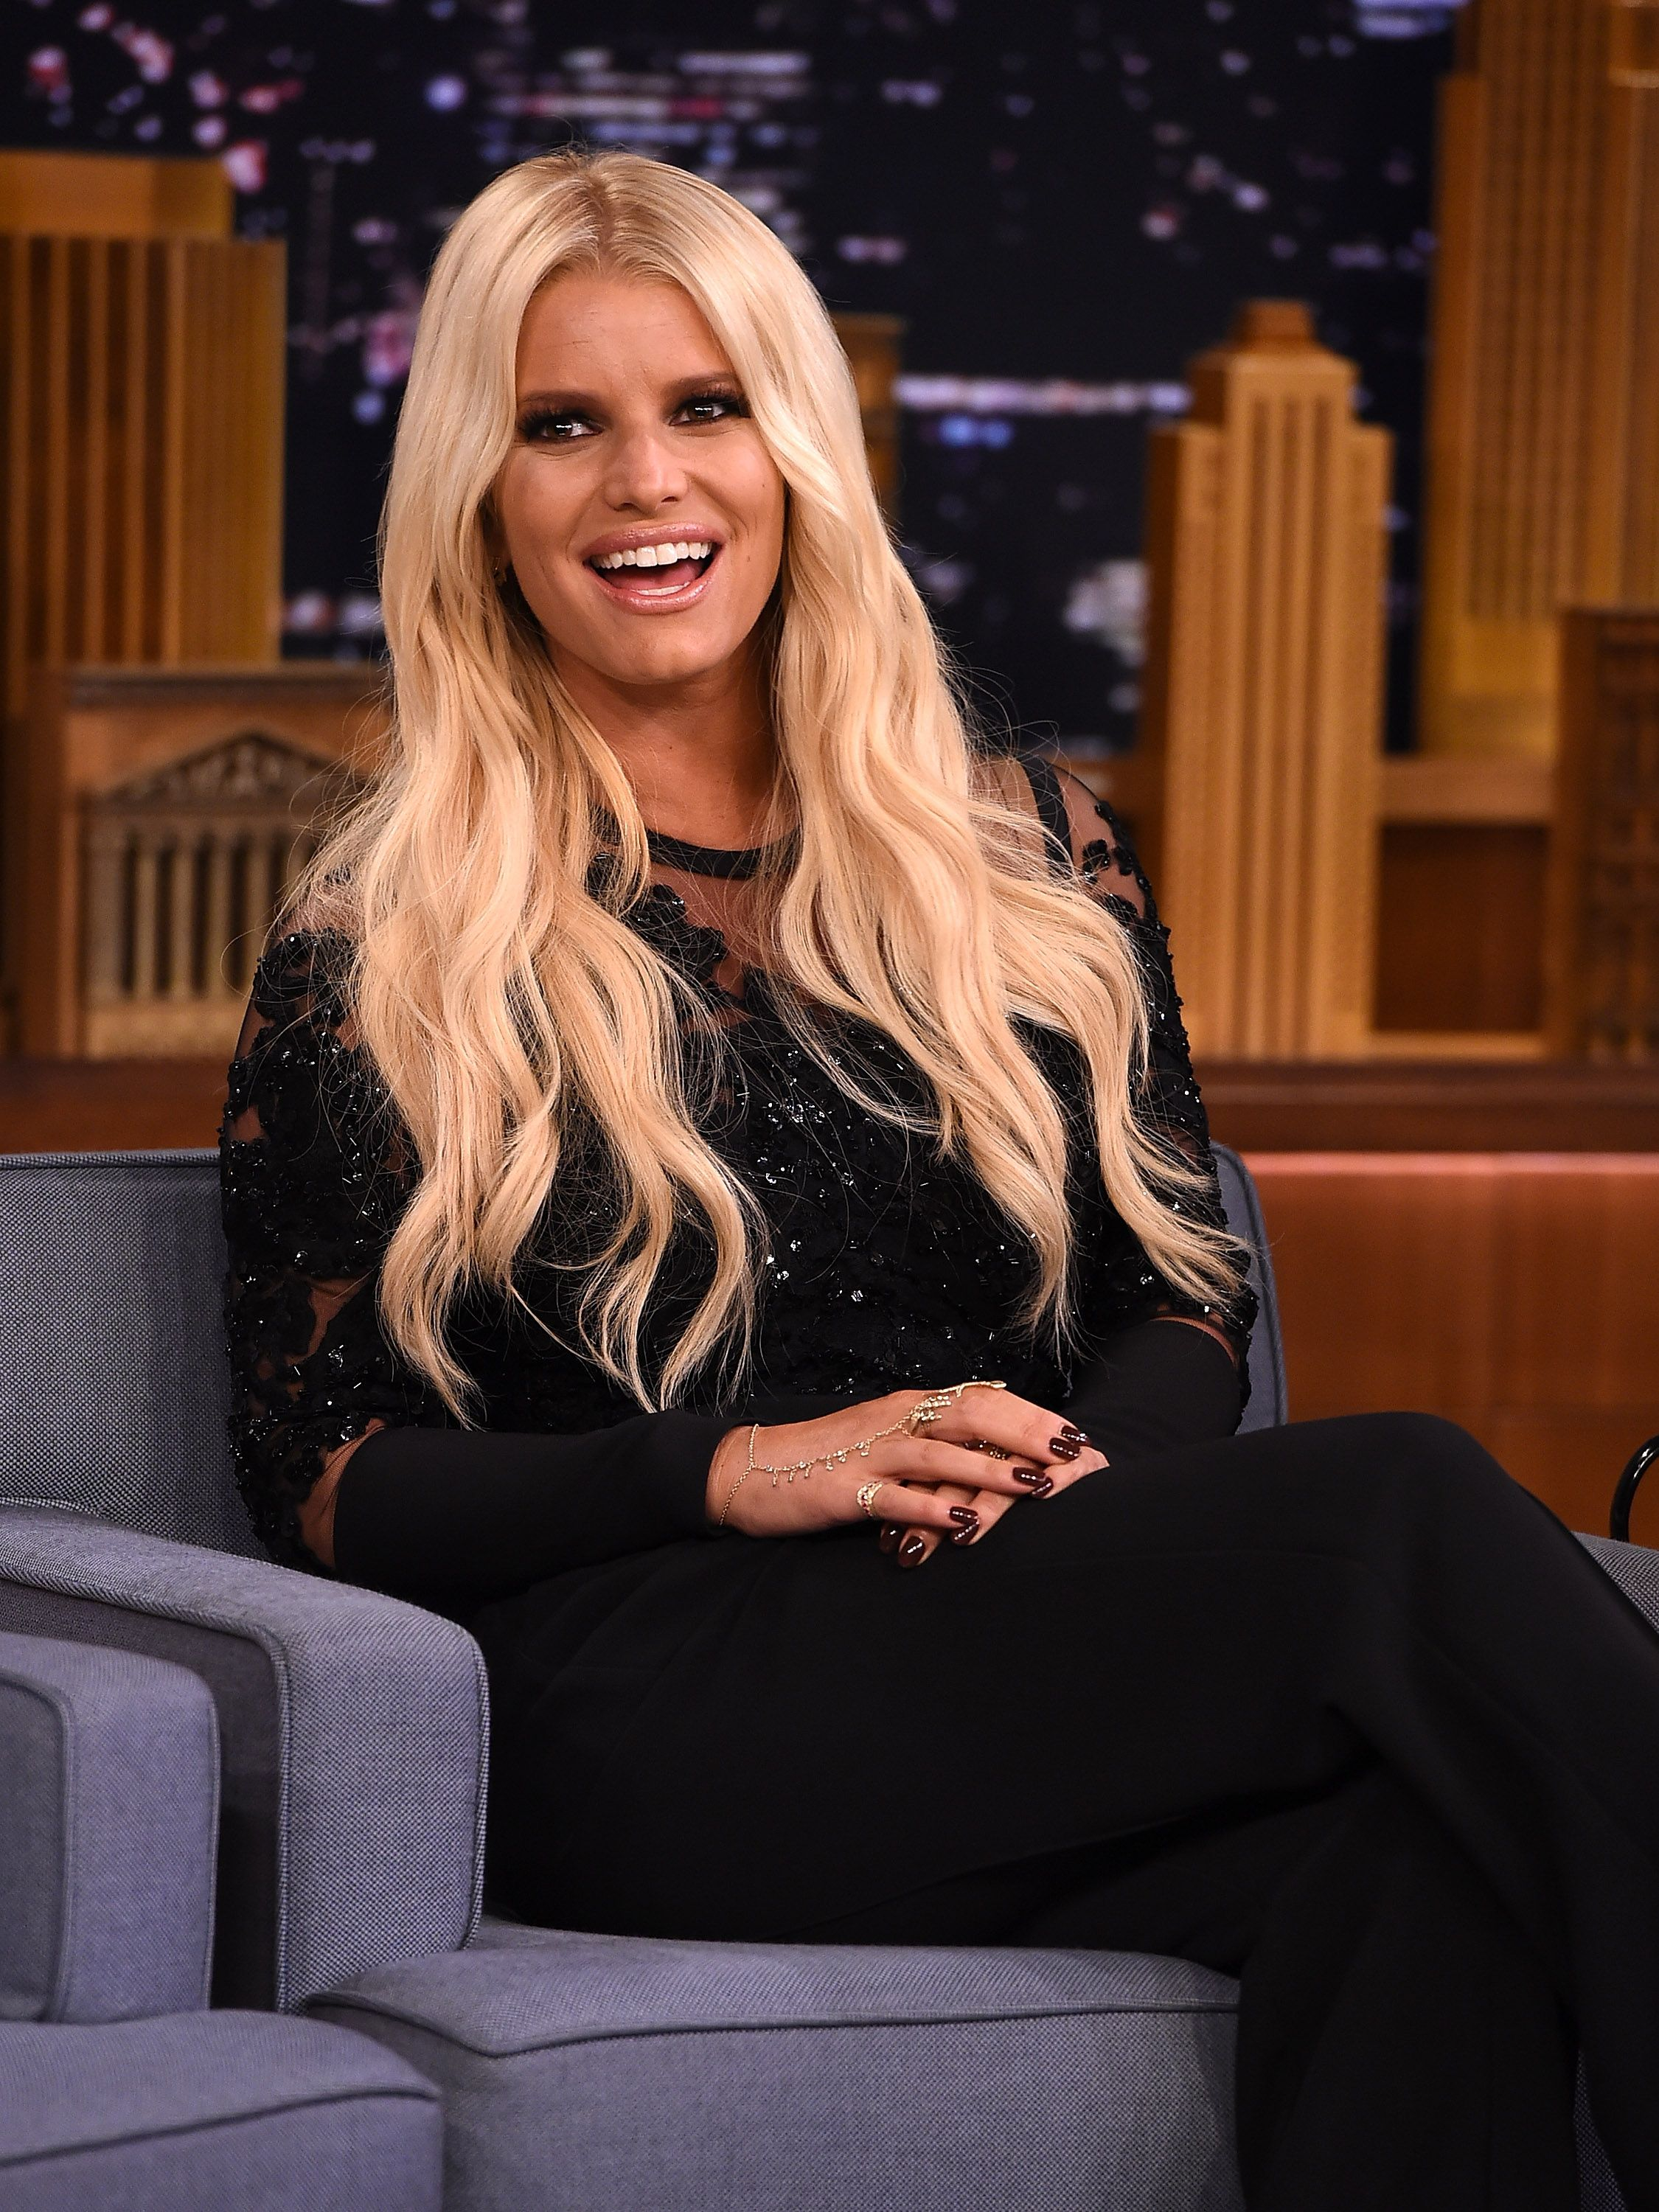 """Jessica Simpson during """"The Tonight Show Starring Jimmy Fallon"""" at Rockefeller Center on September 8, 2015, in New York City. 